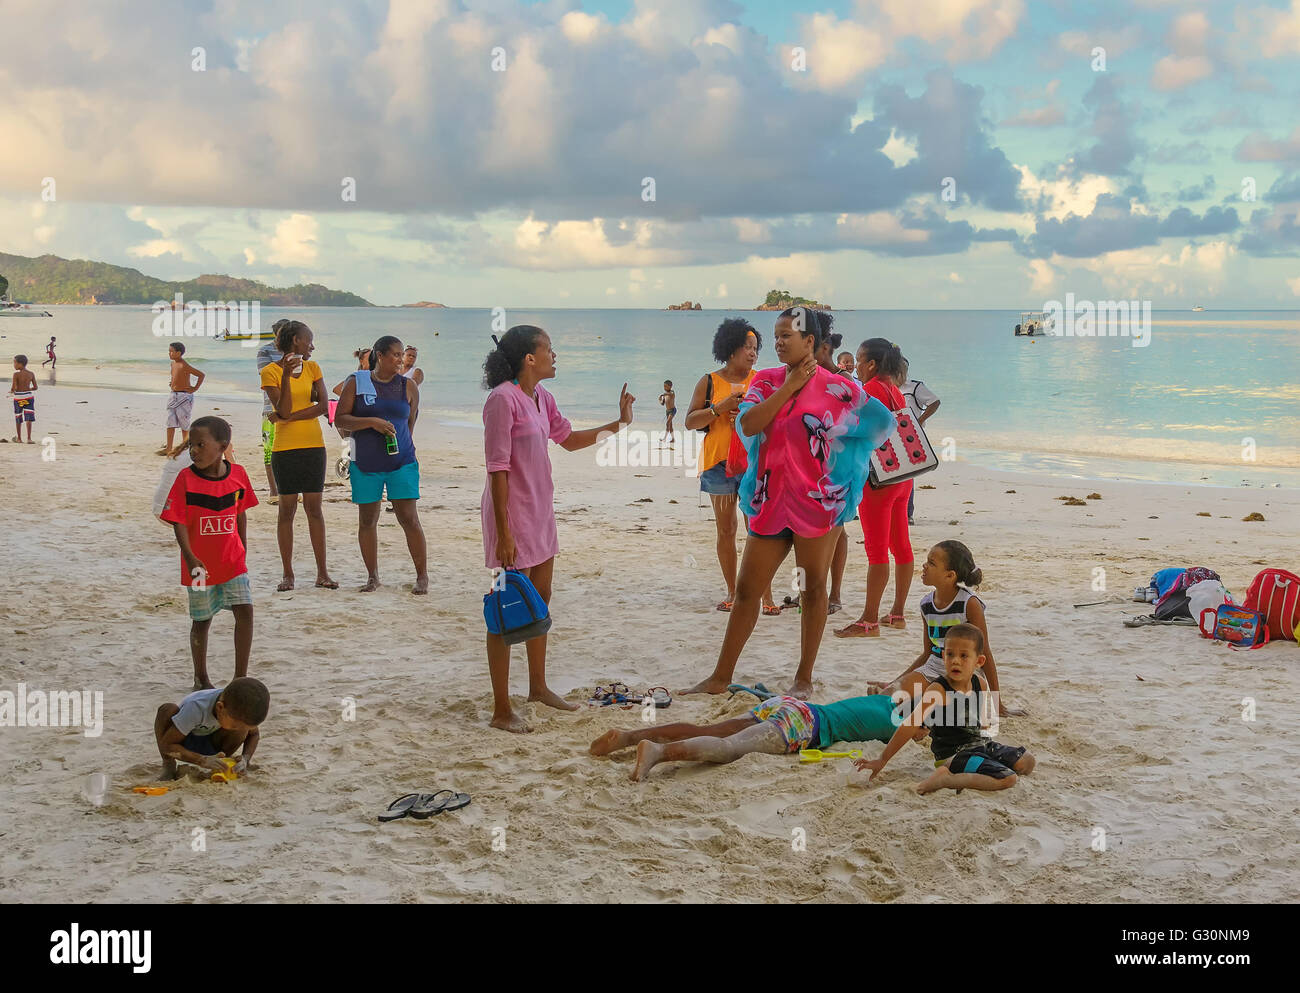 Local people relax in the evening at weekend on the Praslin island beach, Seychelles - Stock Image